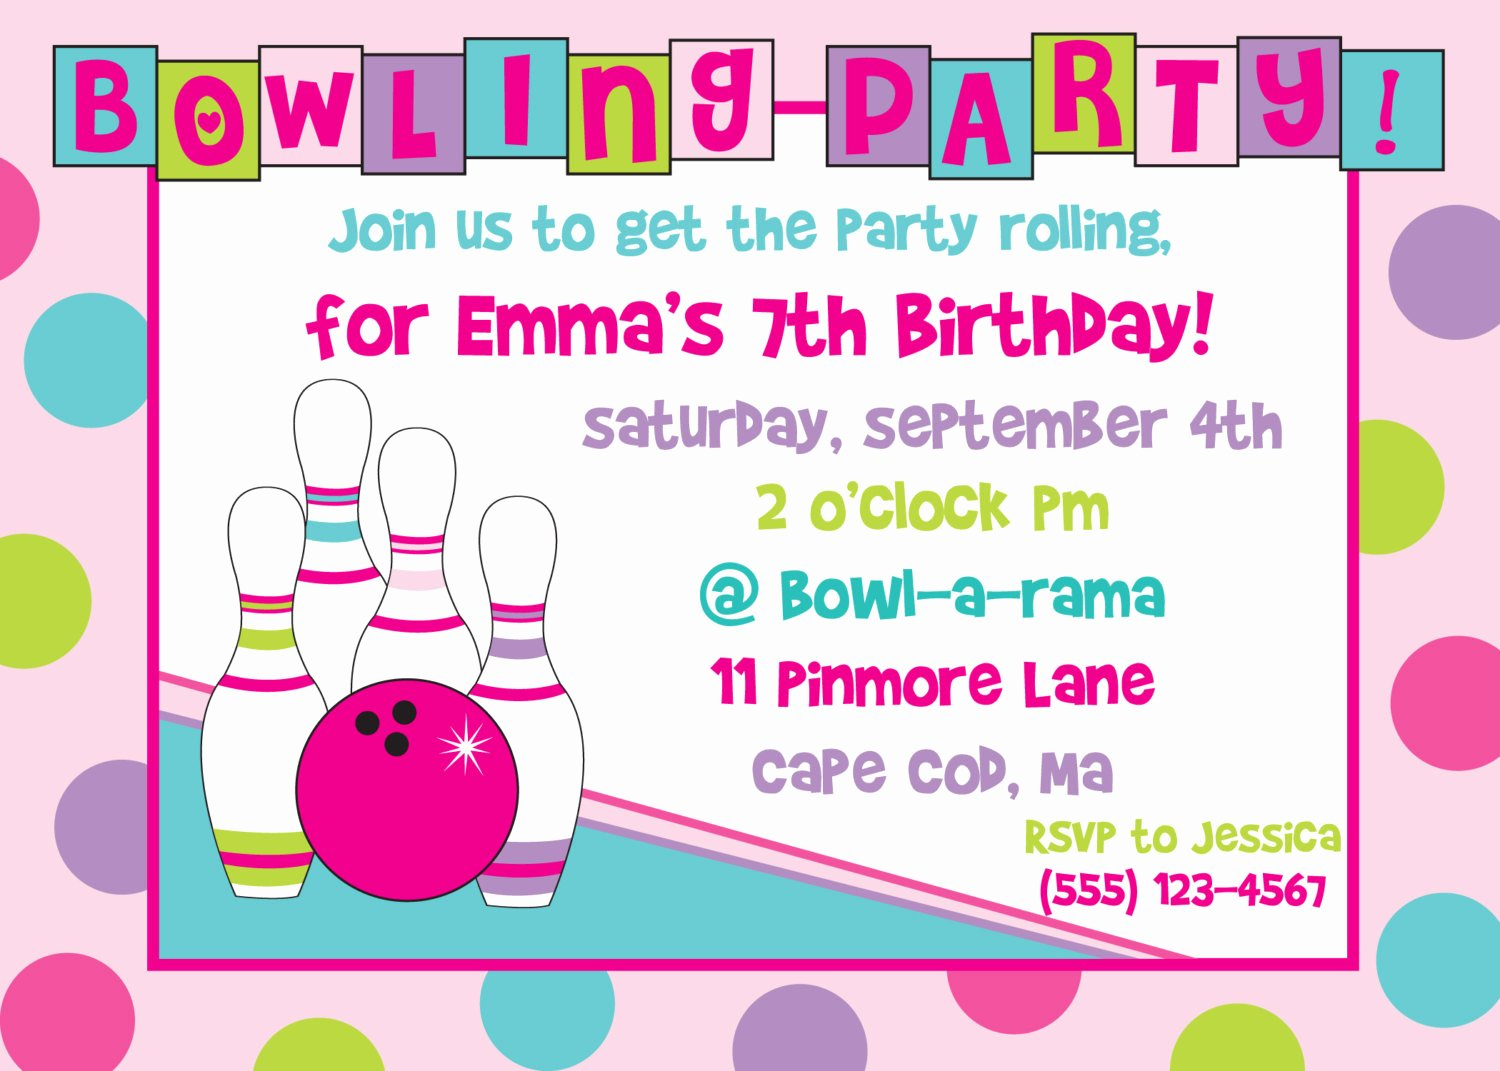 Bowling Party Invites Templates Elegant Bowling Birthday Party Invitation Girl by Anchorbluedesign